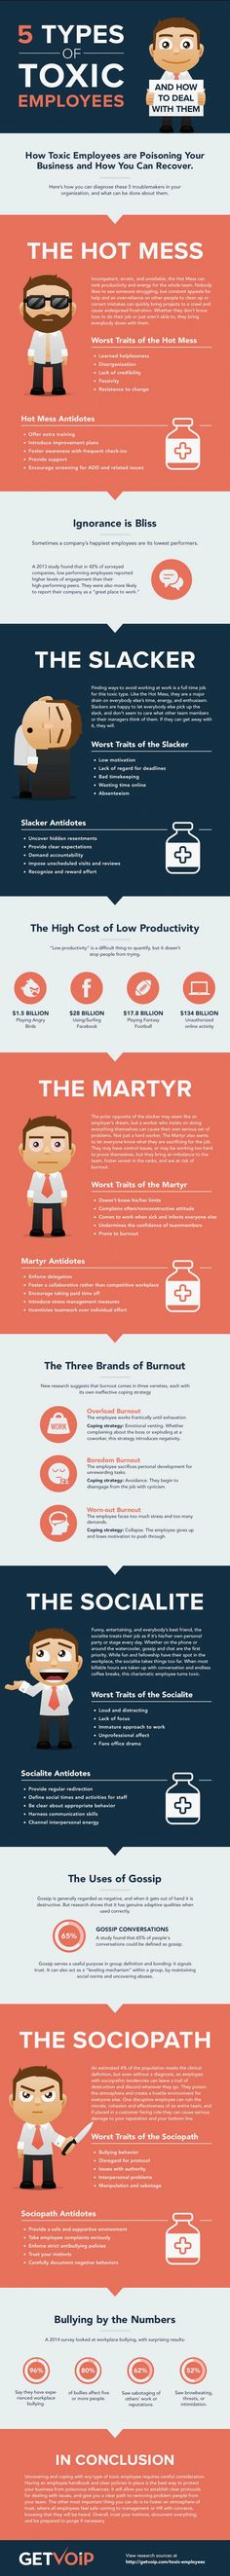 How to Cope With 5 Toxic Coworkers (Infographic) | Inc.com